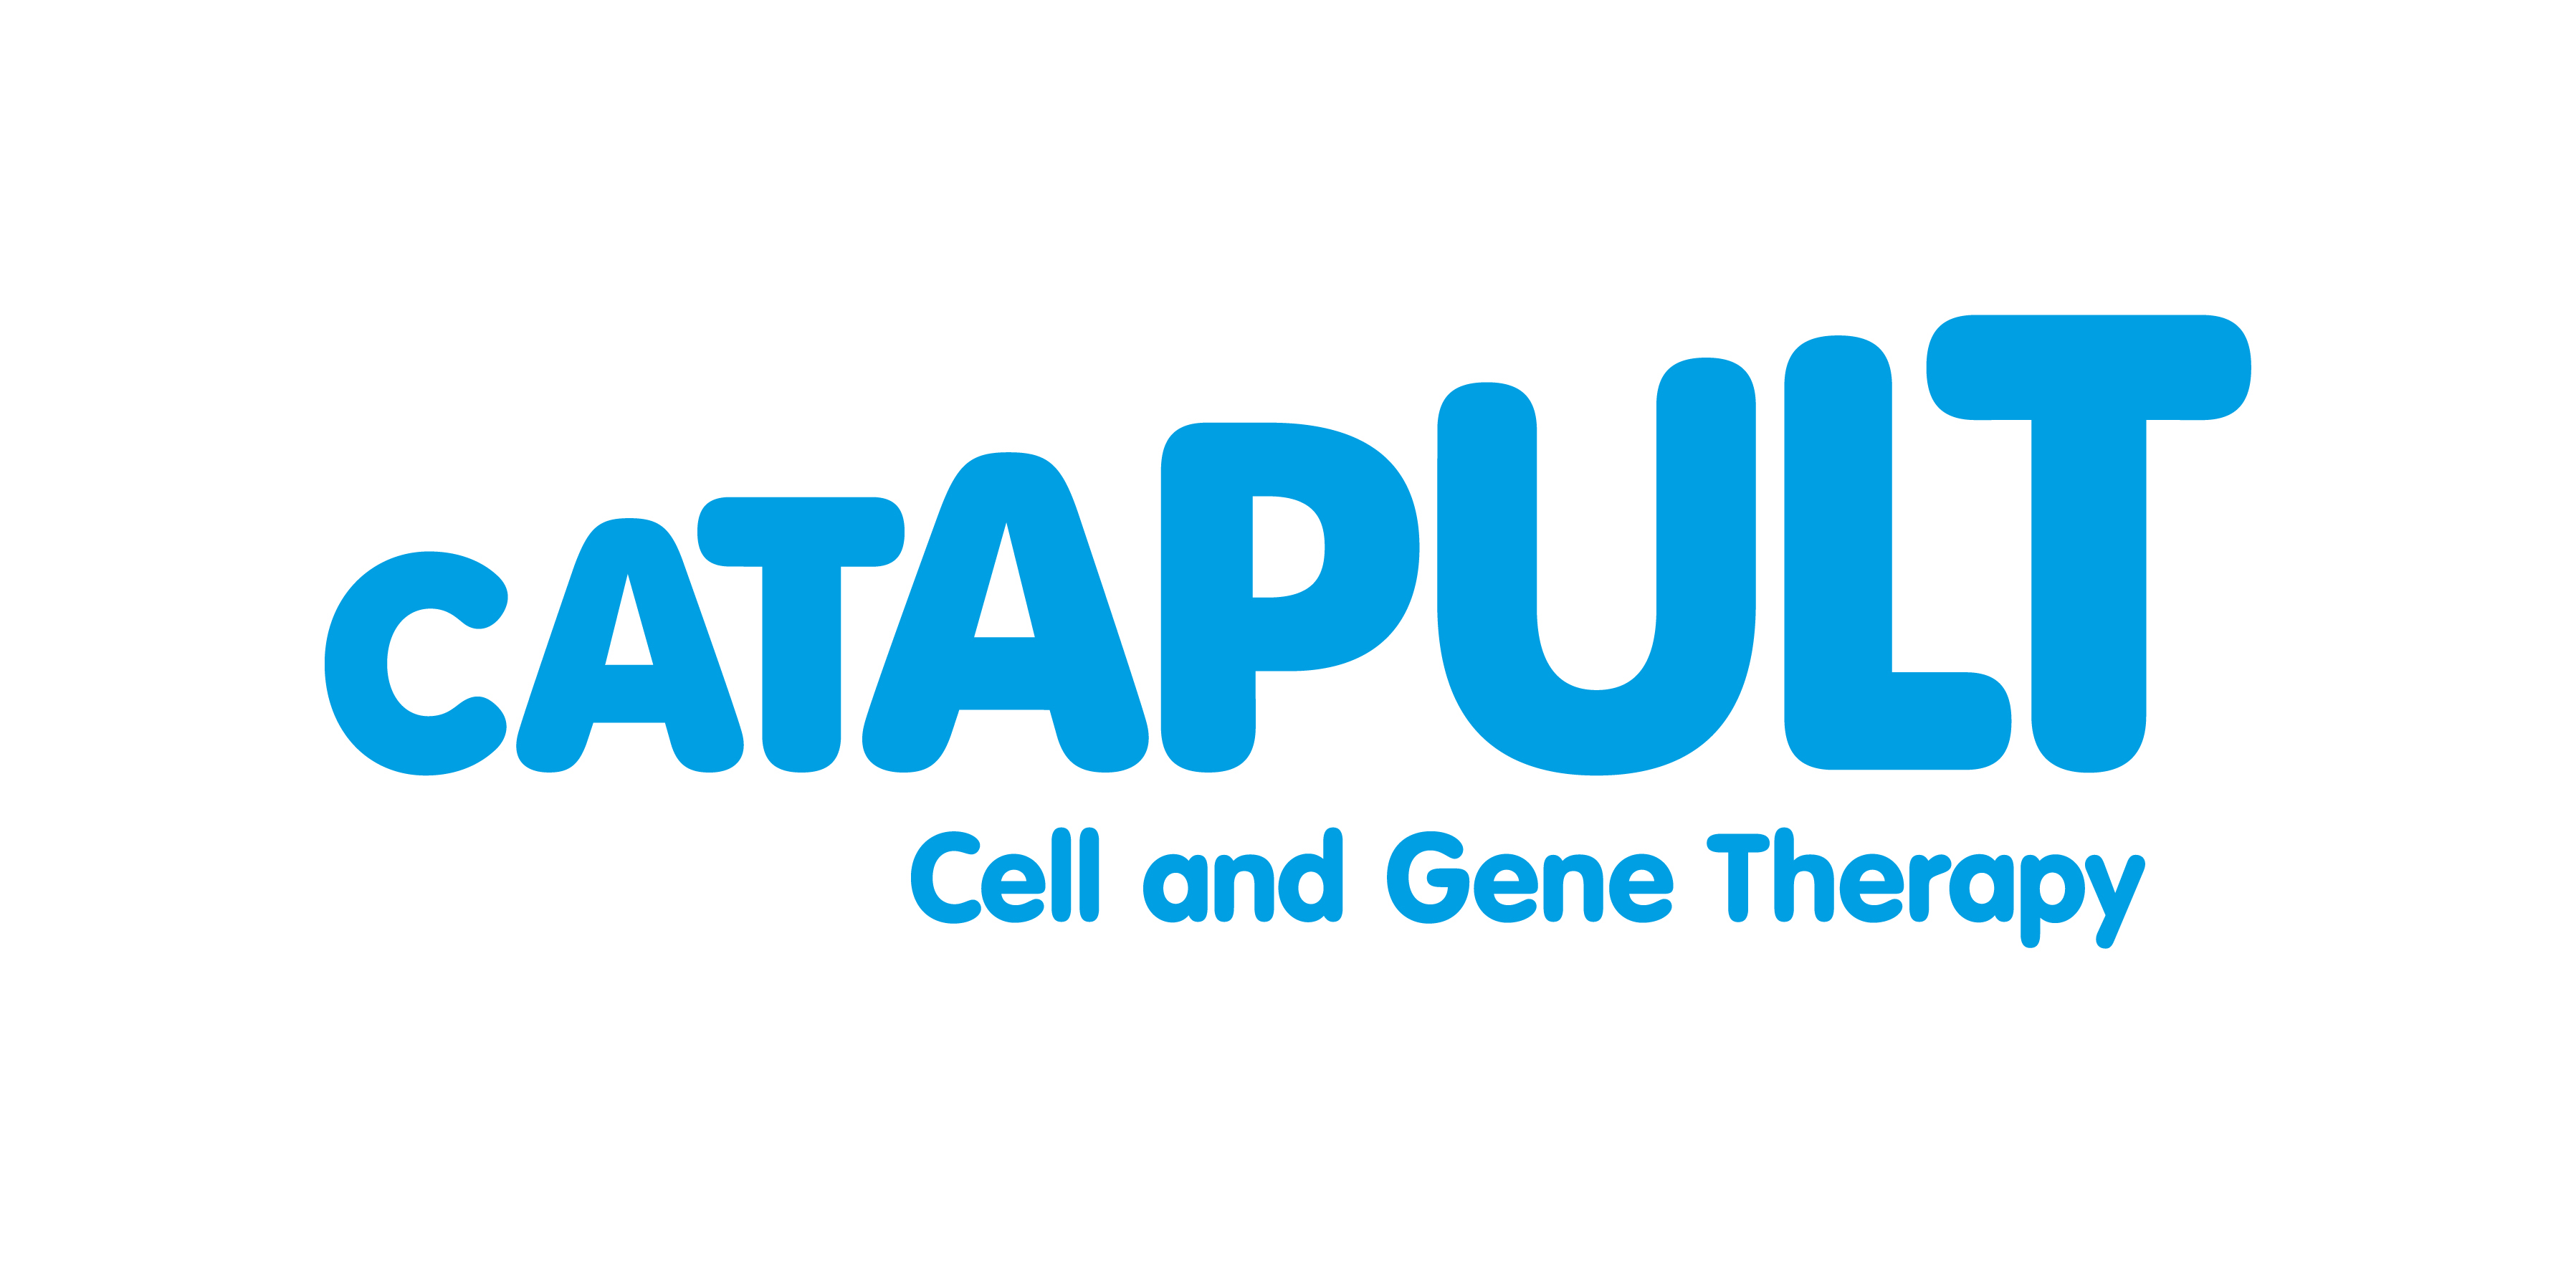 Catapult Therapy TCR Ltd